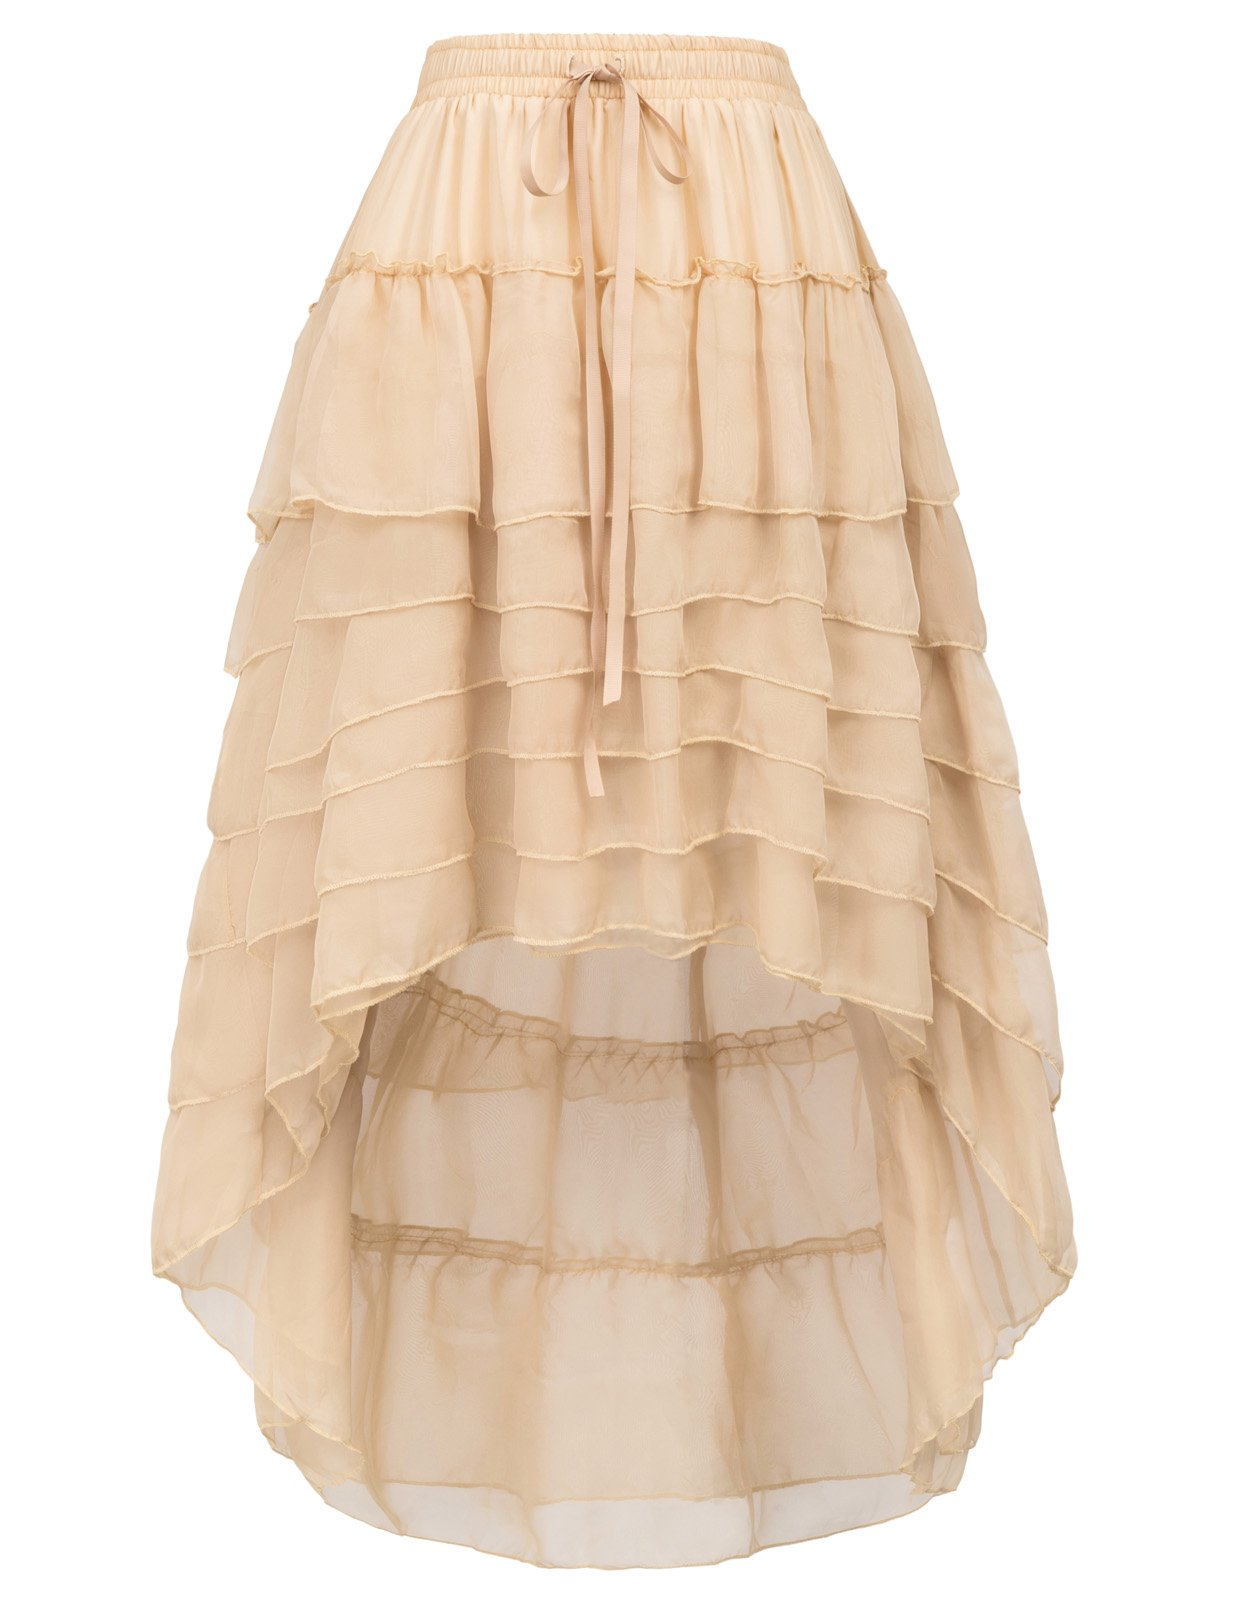 Belle Poque Women's Steampunk Pirate Skirt High Low for Wedding BP227-2 Size S Champagne